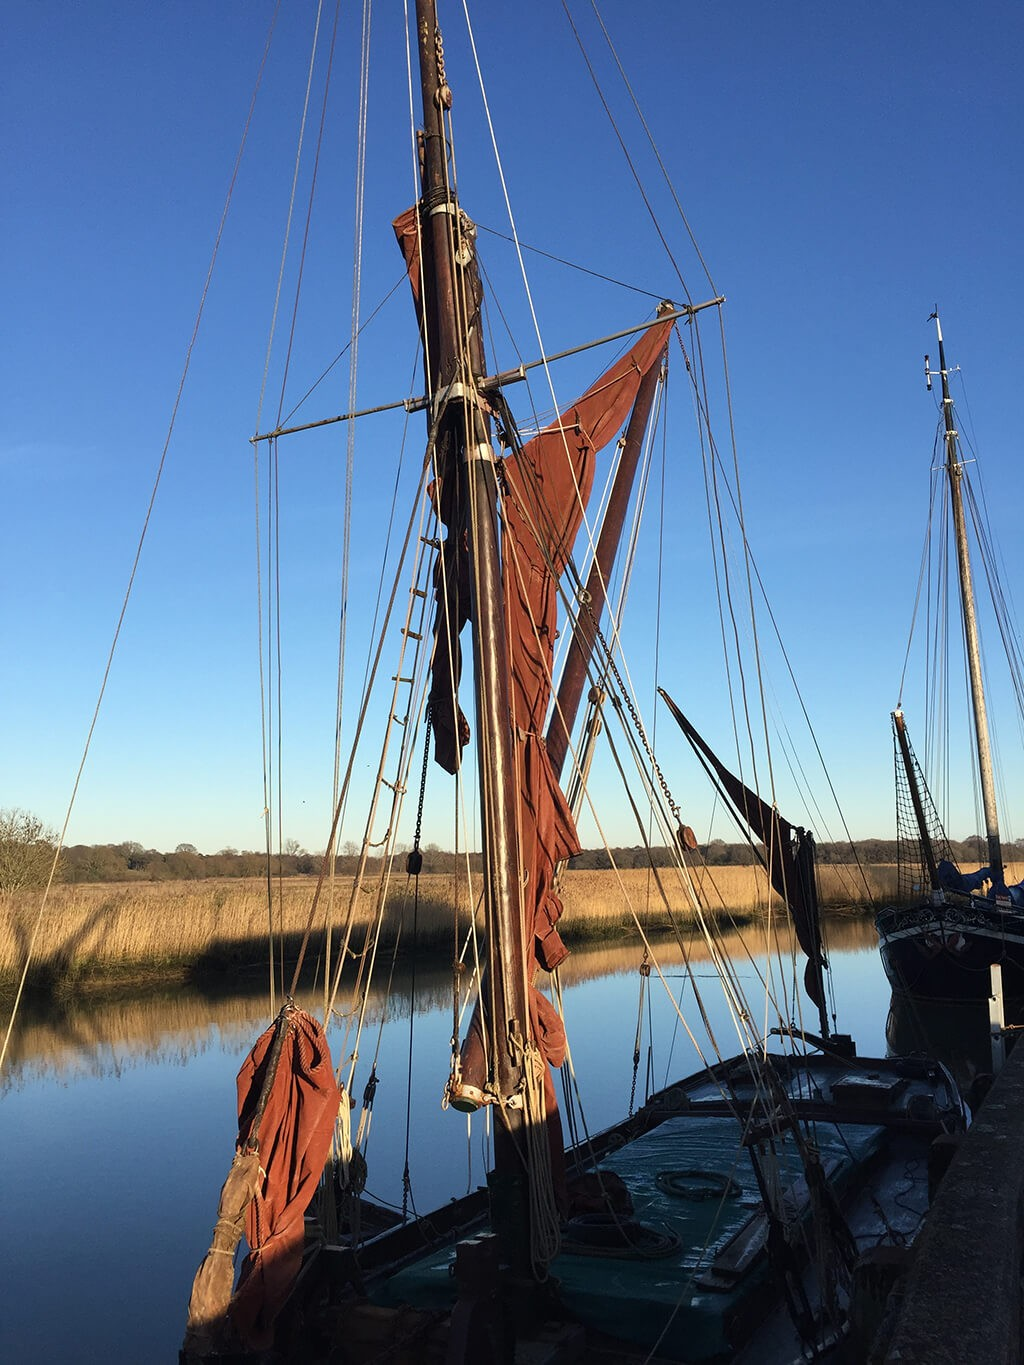 Aldeburgh to Snape: The Sailors' Path